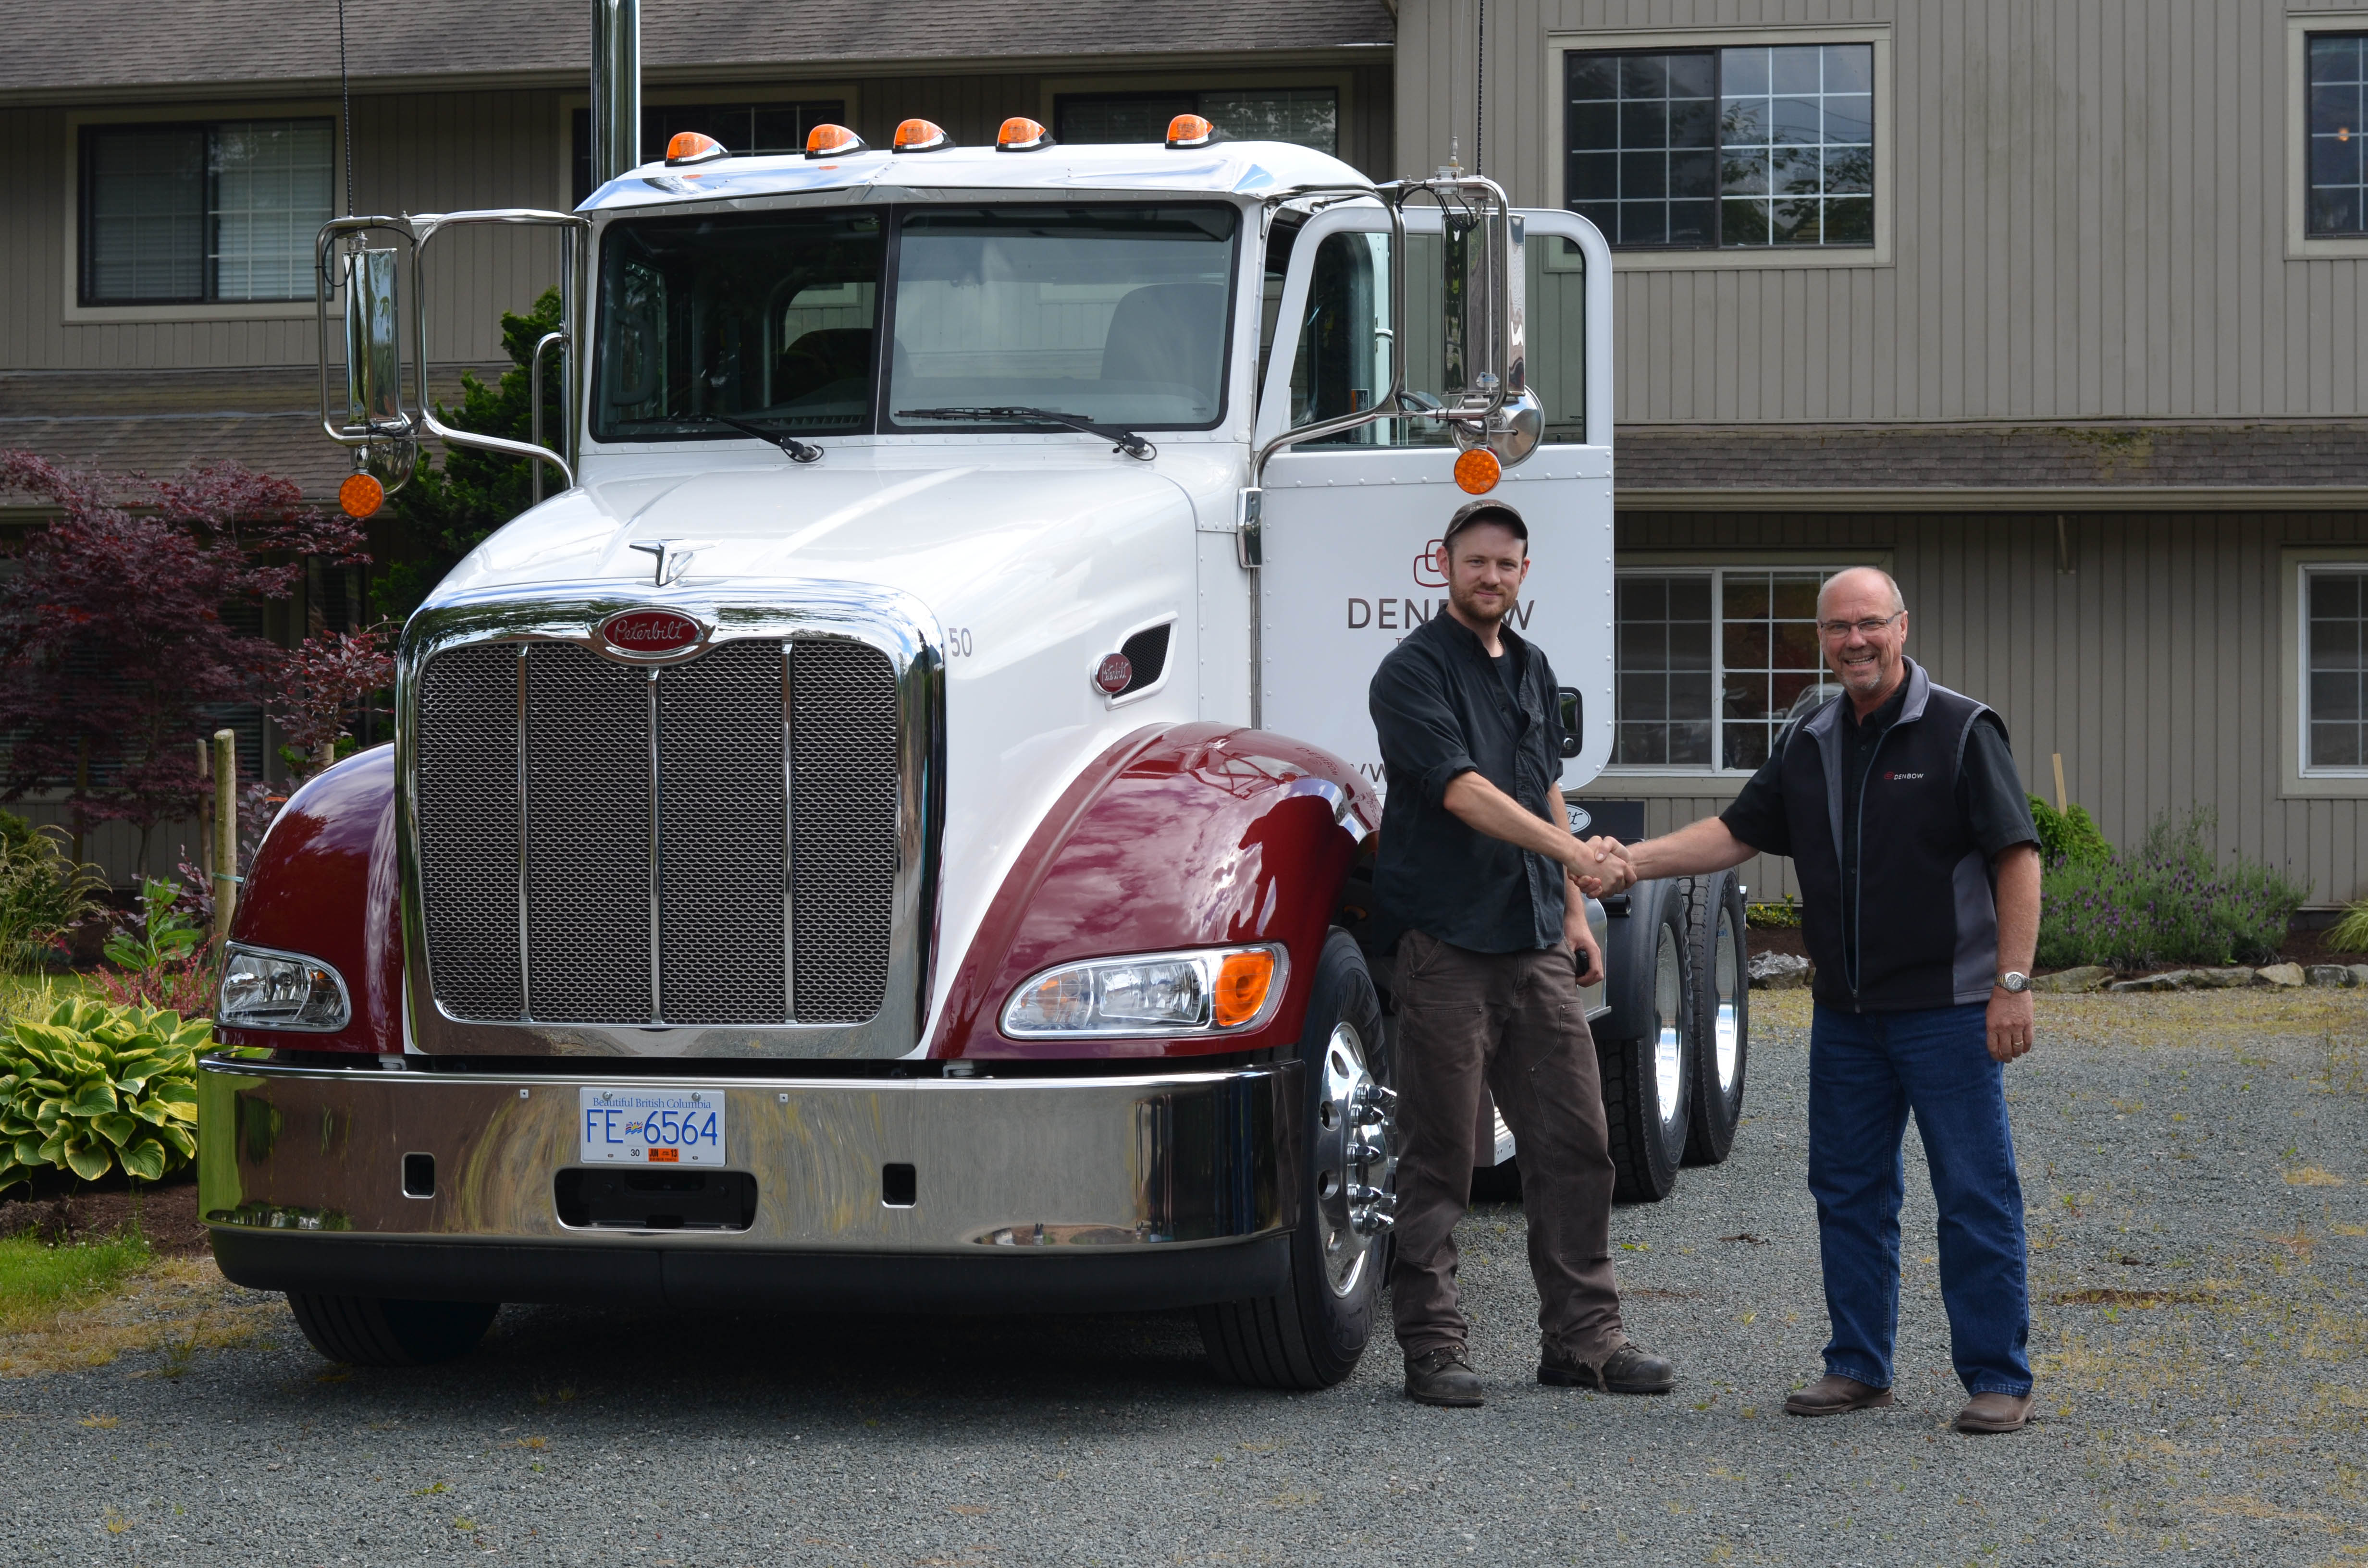 Denbow New Truck #50 - Bill & Josh